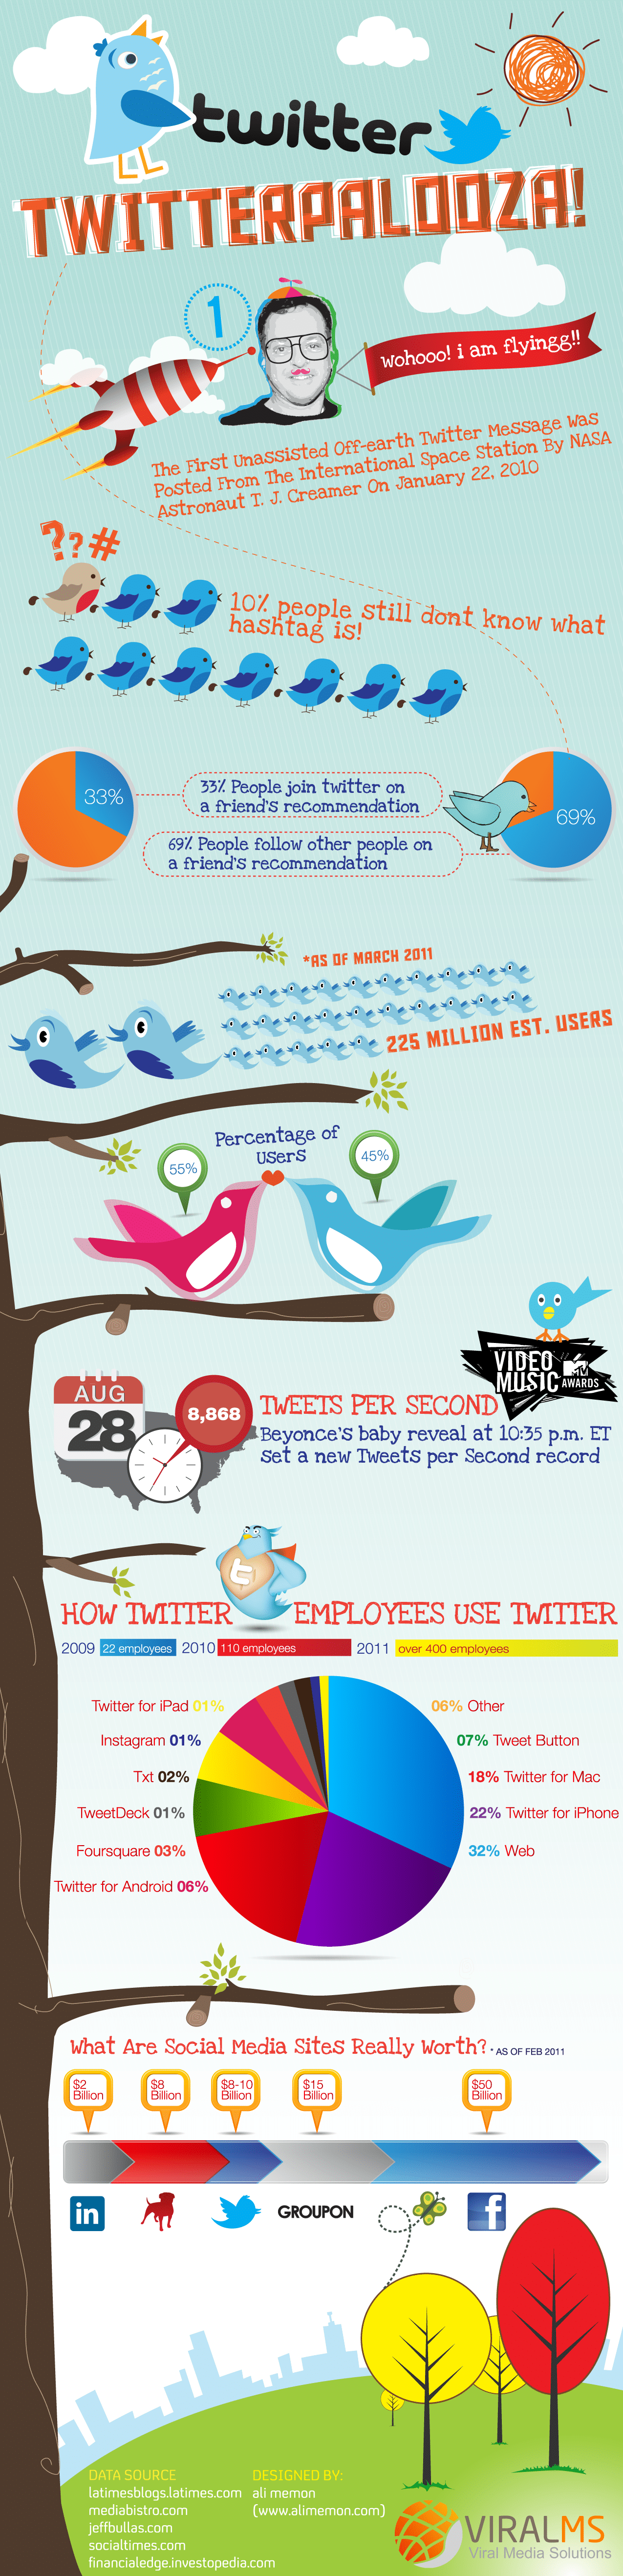 Twitterpalooza: Twitter Statistics In Focus [Infographic]